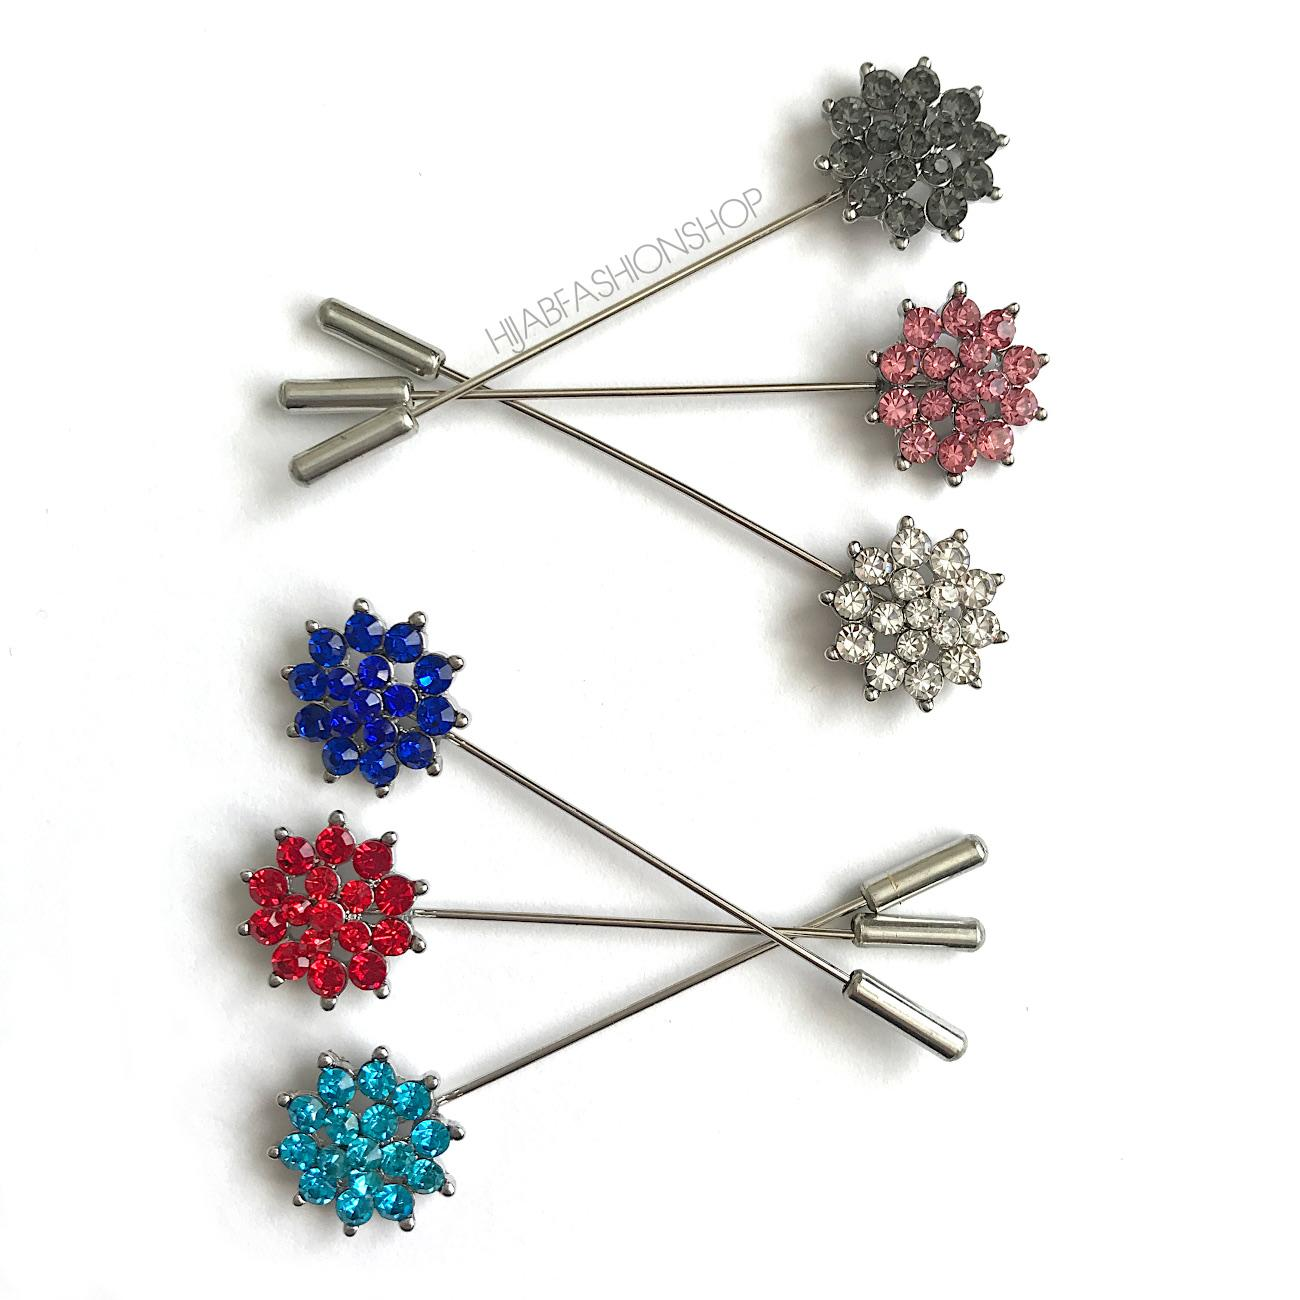 6 hijab stick pins with crystal flower design in variety of colours